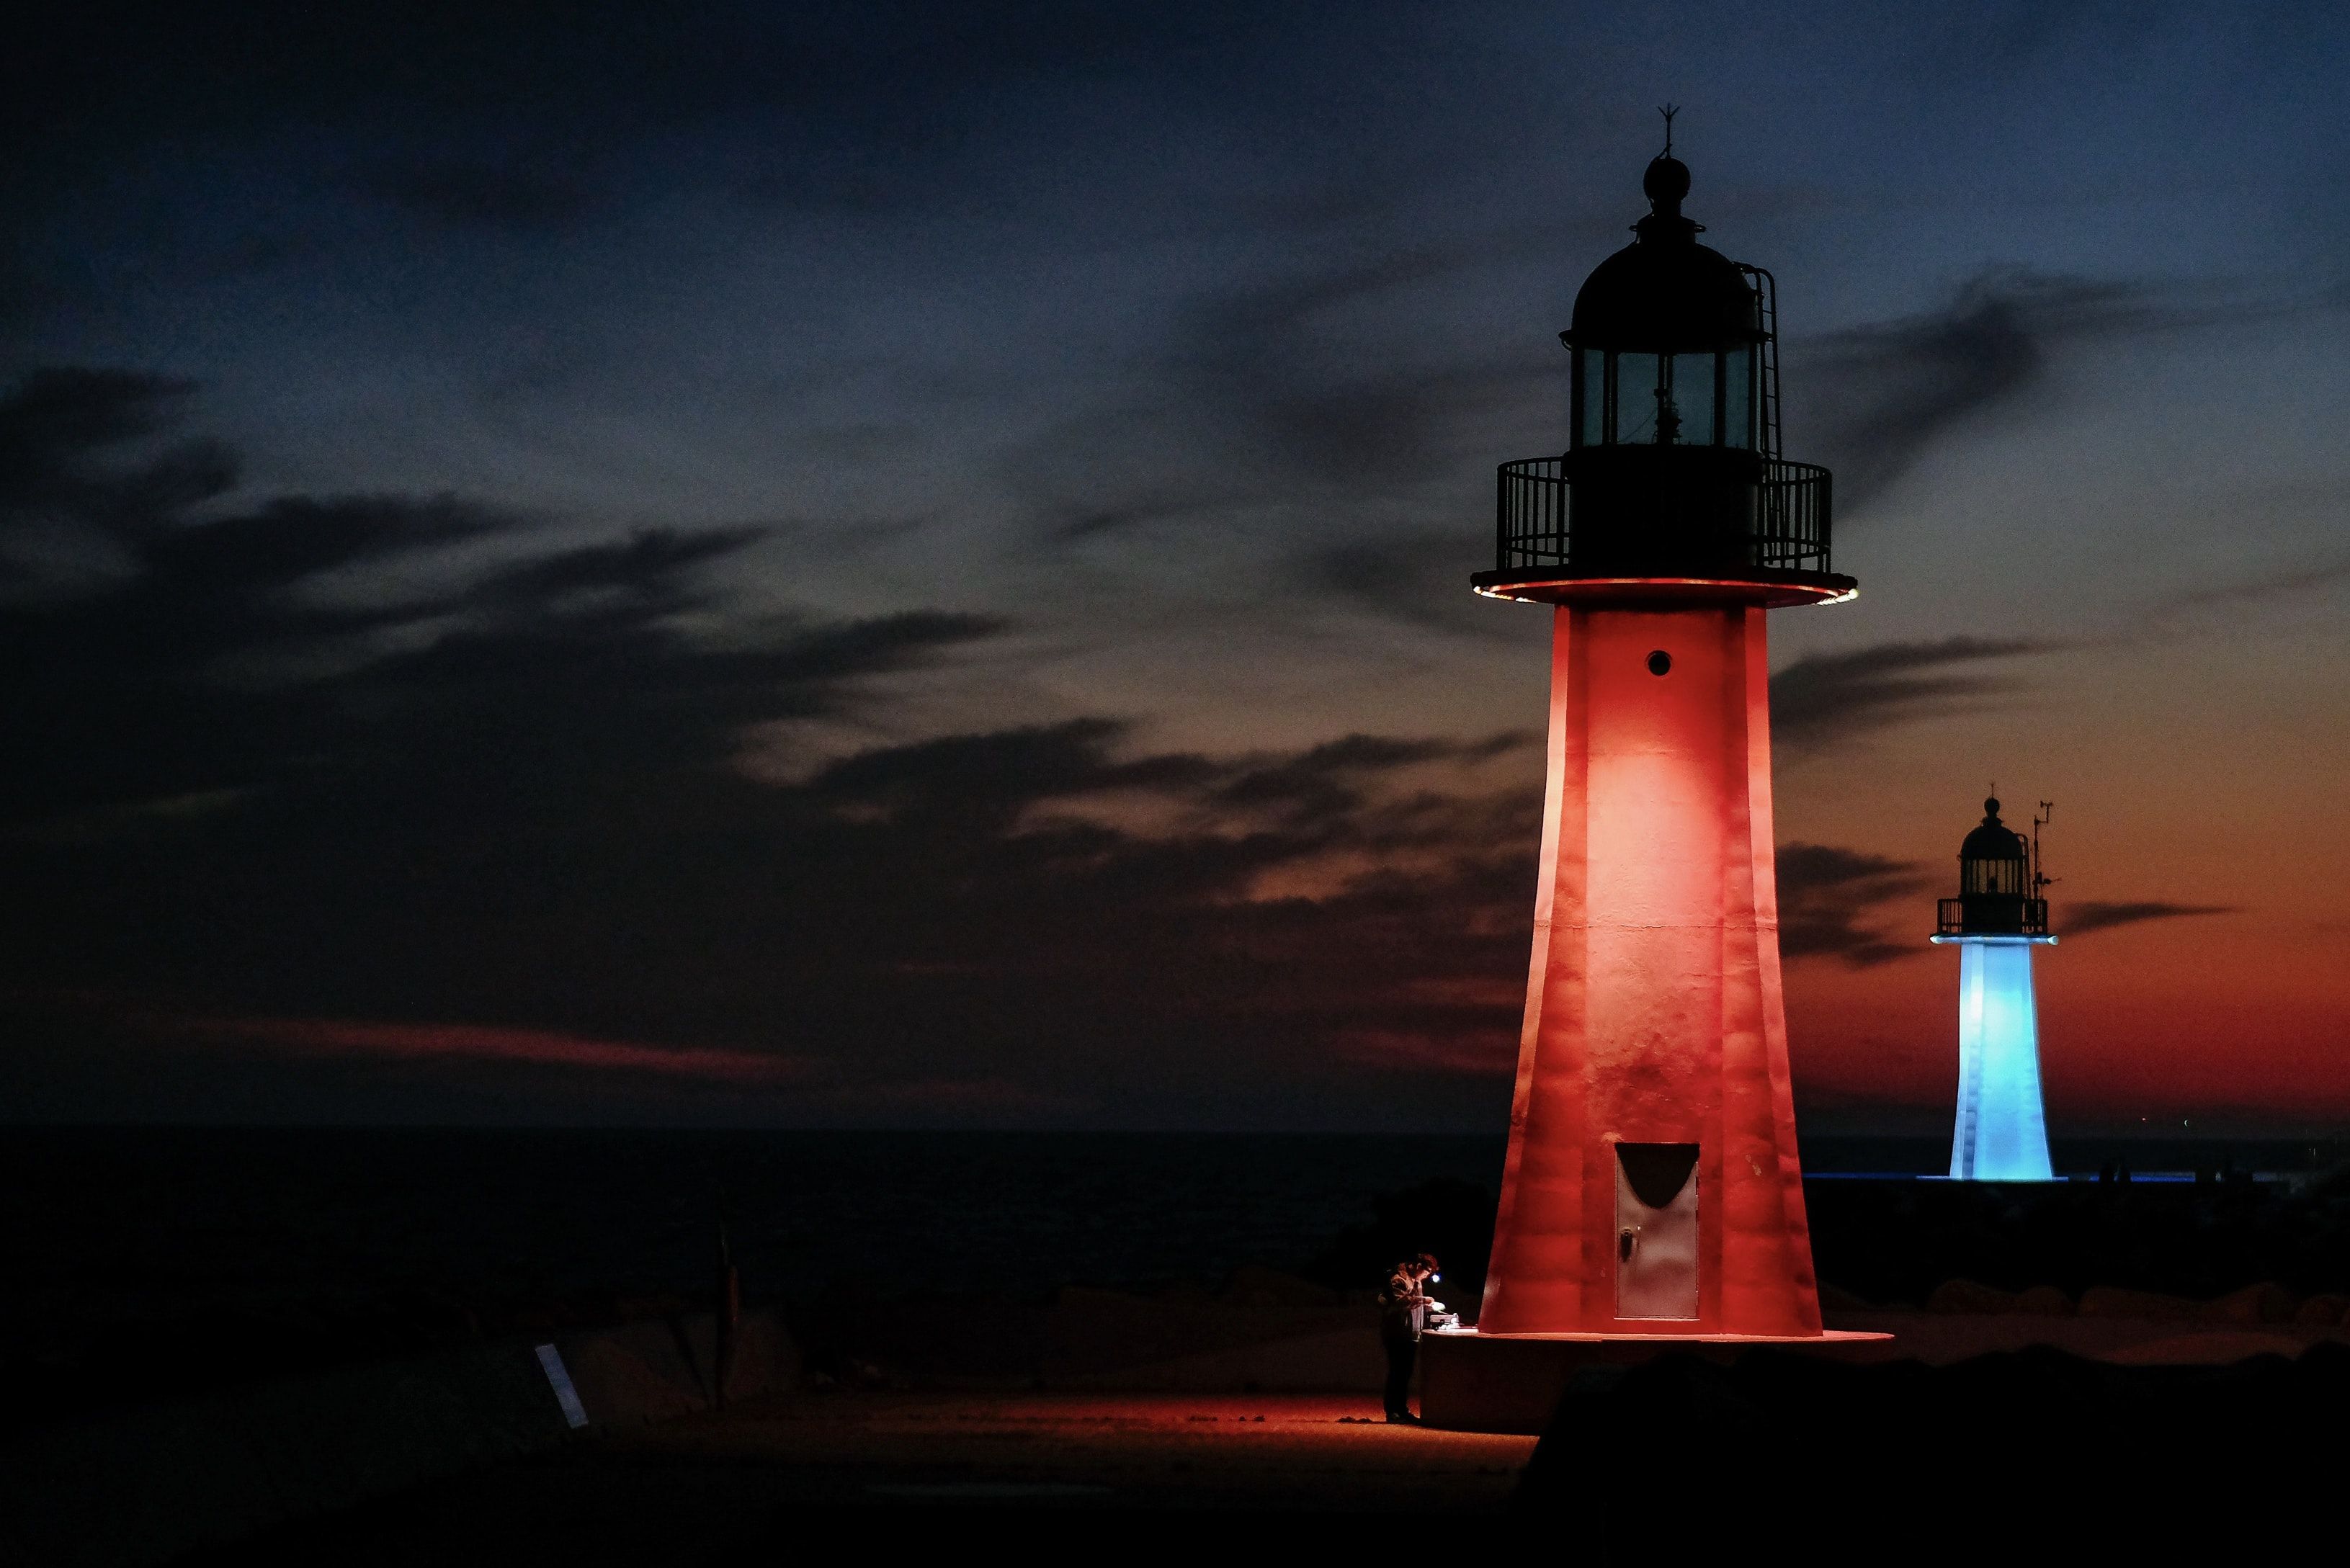 red and blue lighter watch towers during nighttime